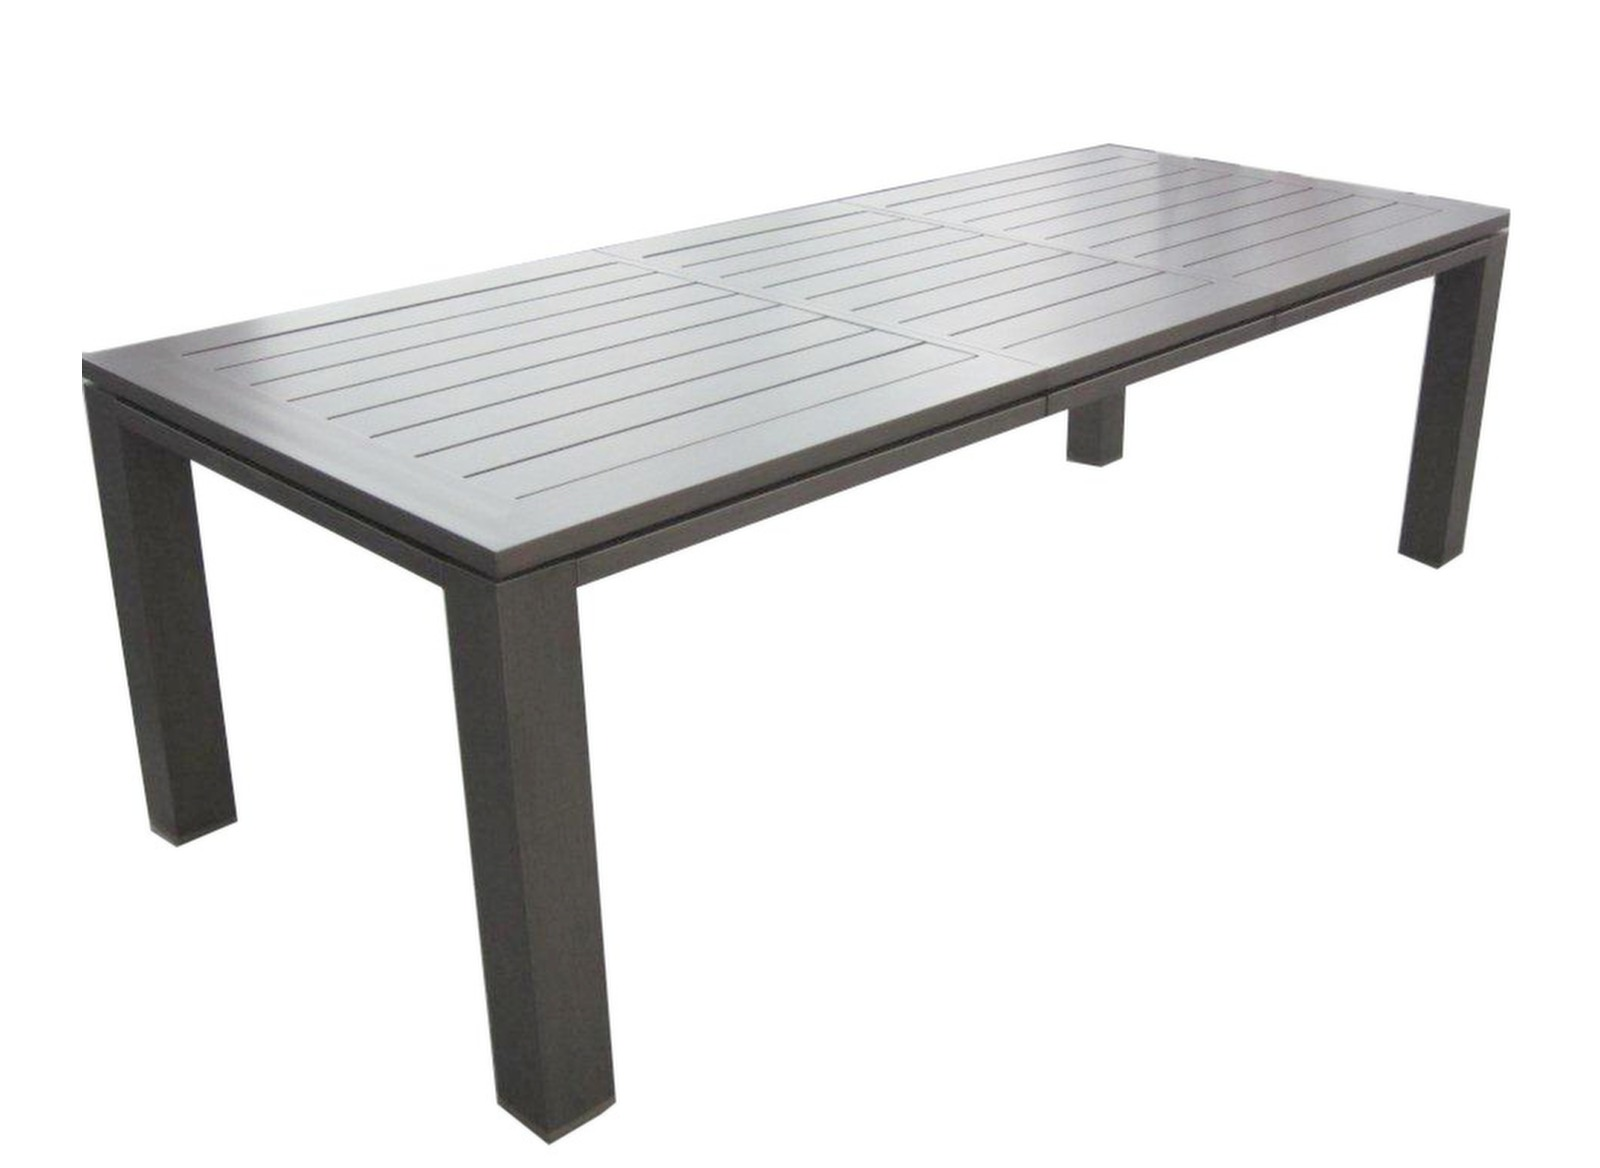 Table de jardin aluminium 180 240cm latino oc o proloisirs for Table basse en aluminium